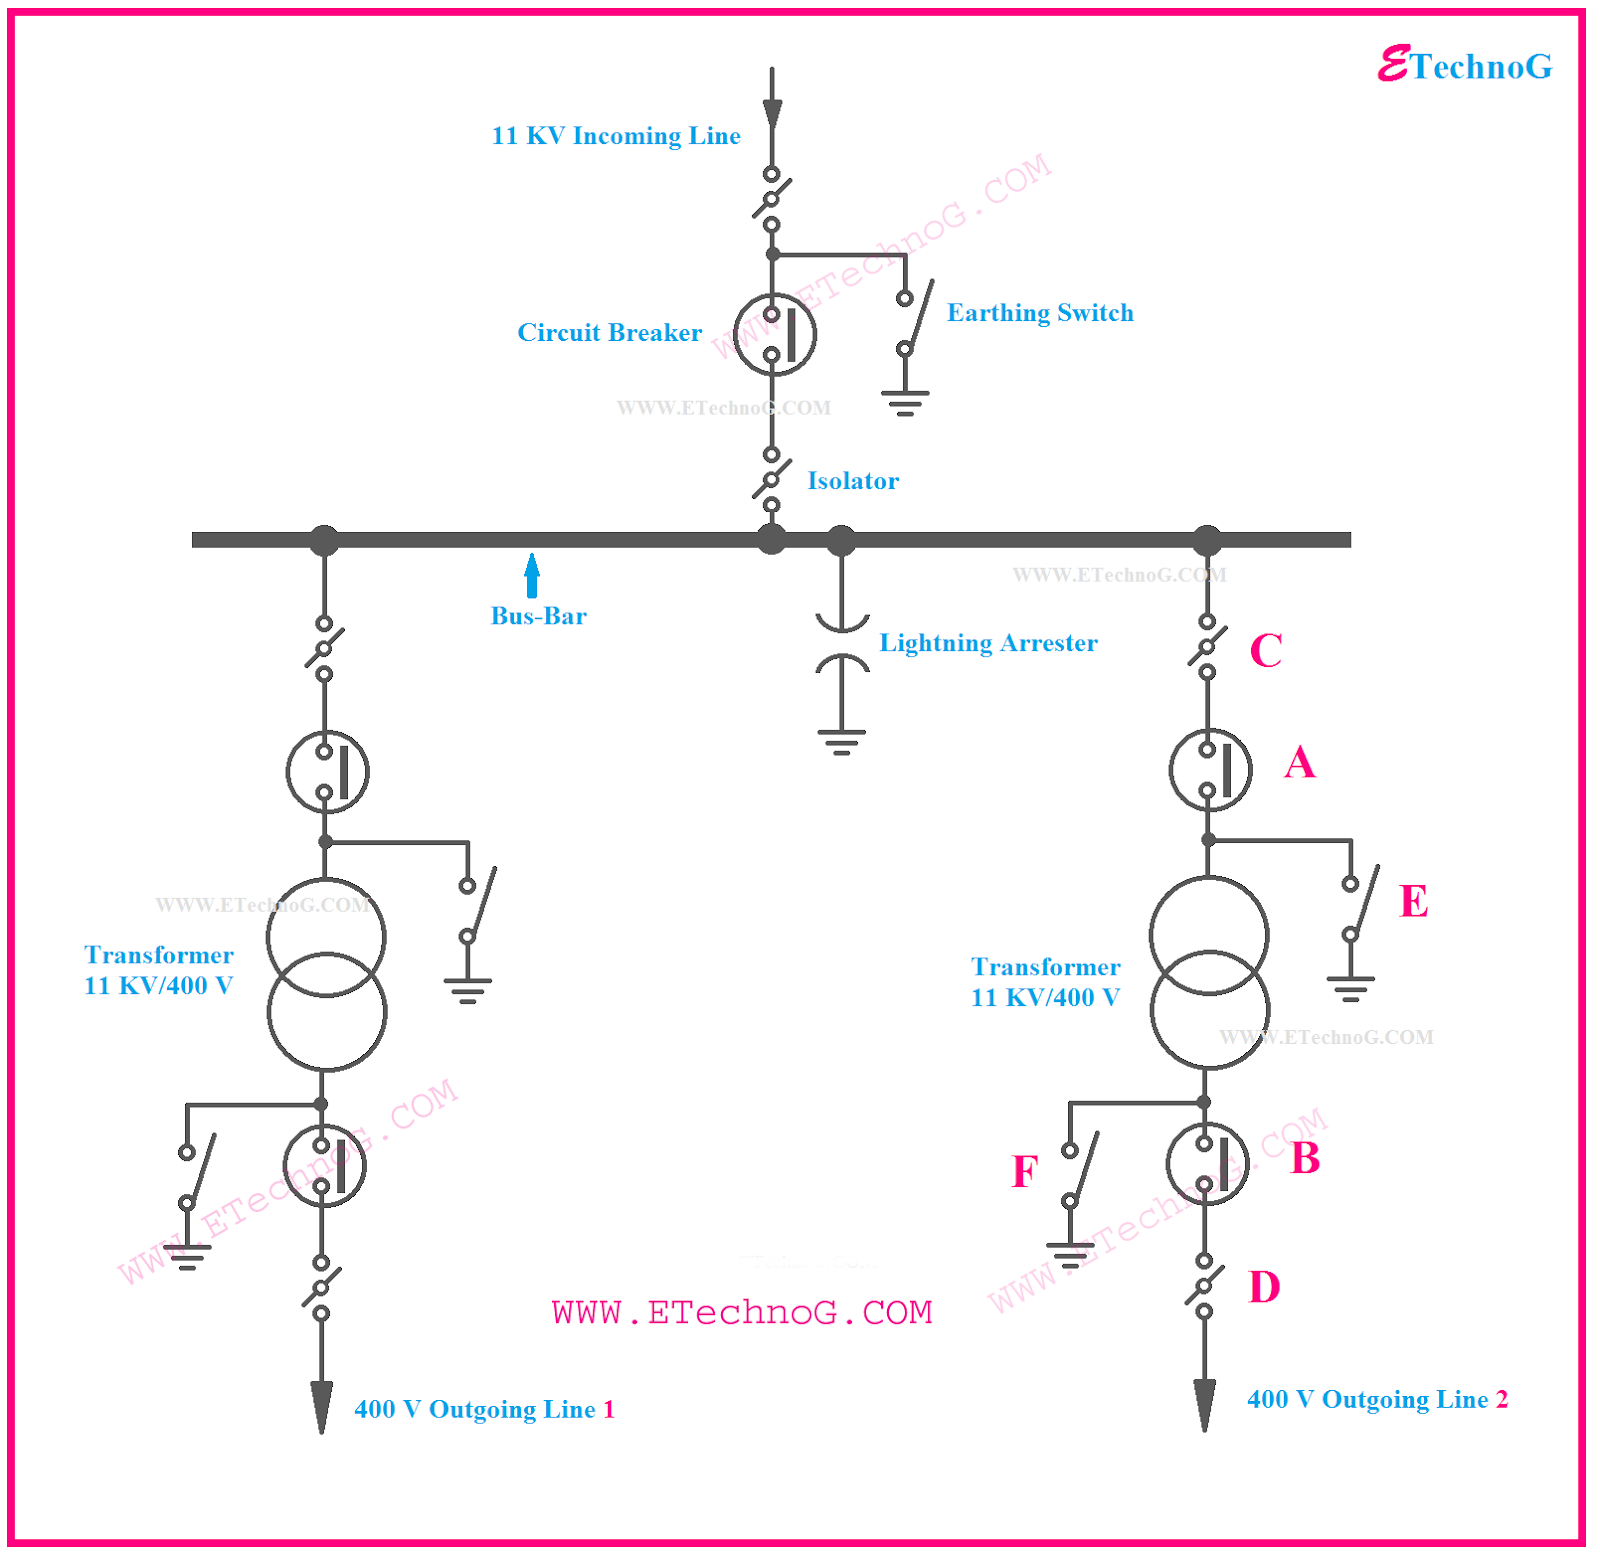 Importance and Operation Sequence of Isolator, Circuit